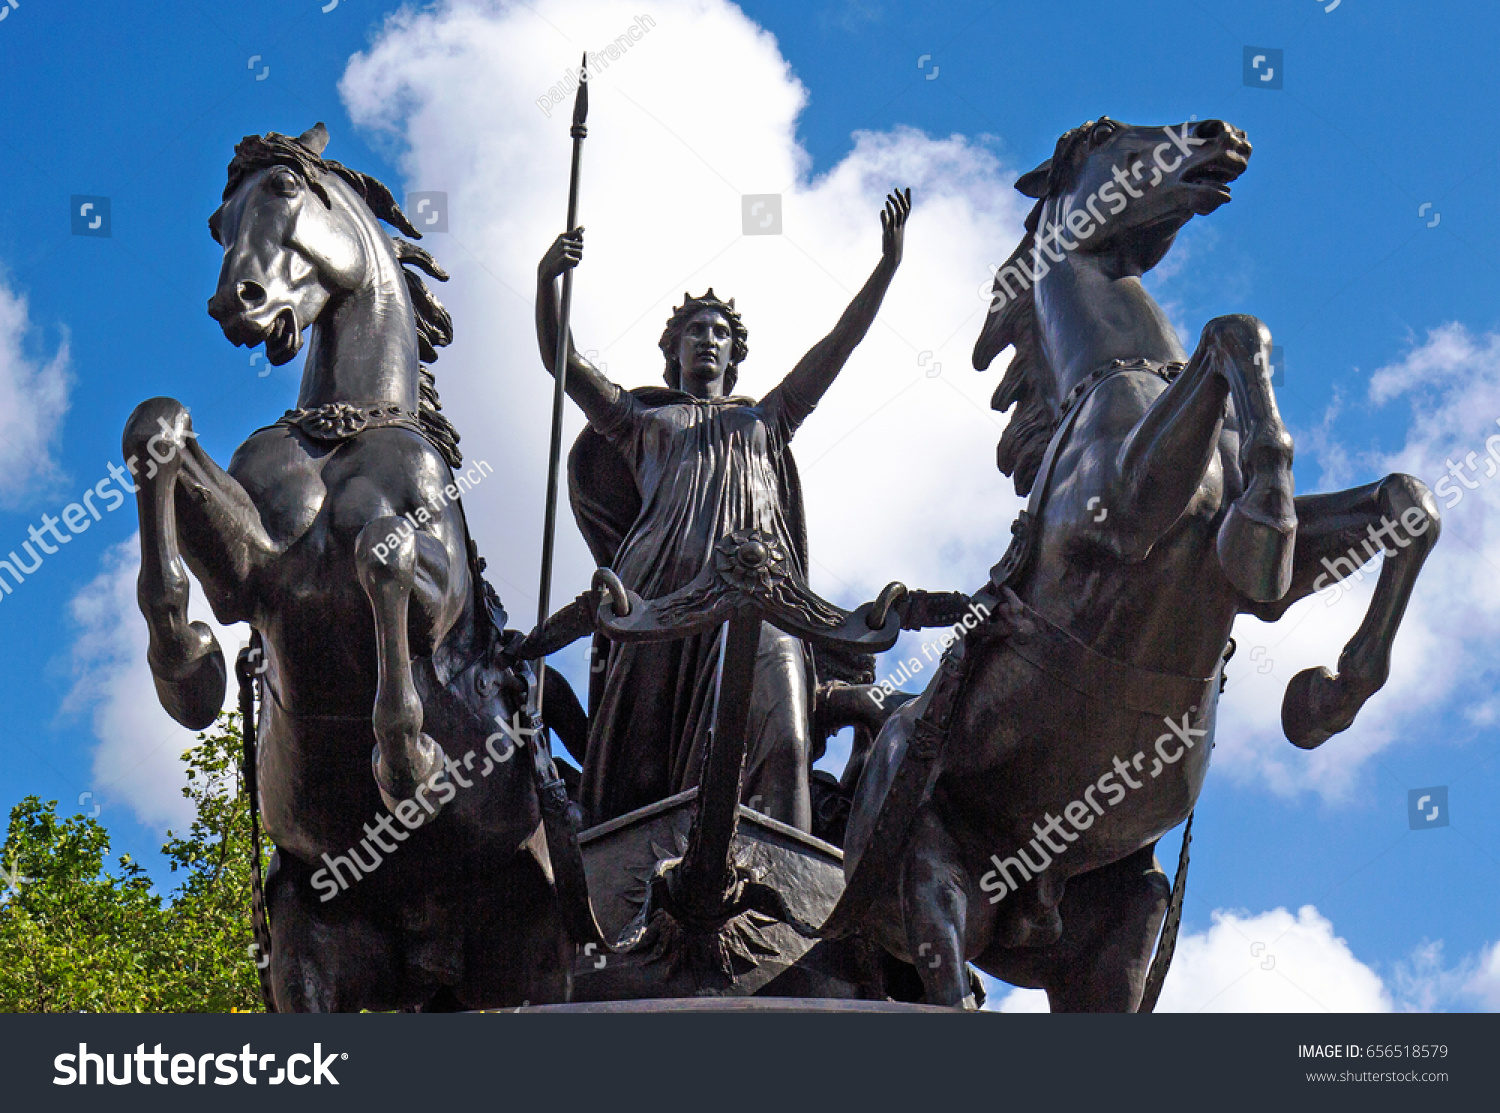 Boadicea and Her Daughters is a bronze sculptured monument and is located on Westminster Pier in London.  The sculptor was Thomas Thornycroft.  Westminster Bridge,  London, England, 2016